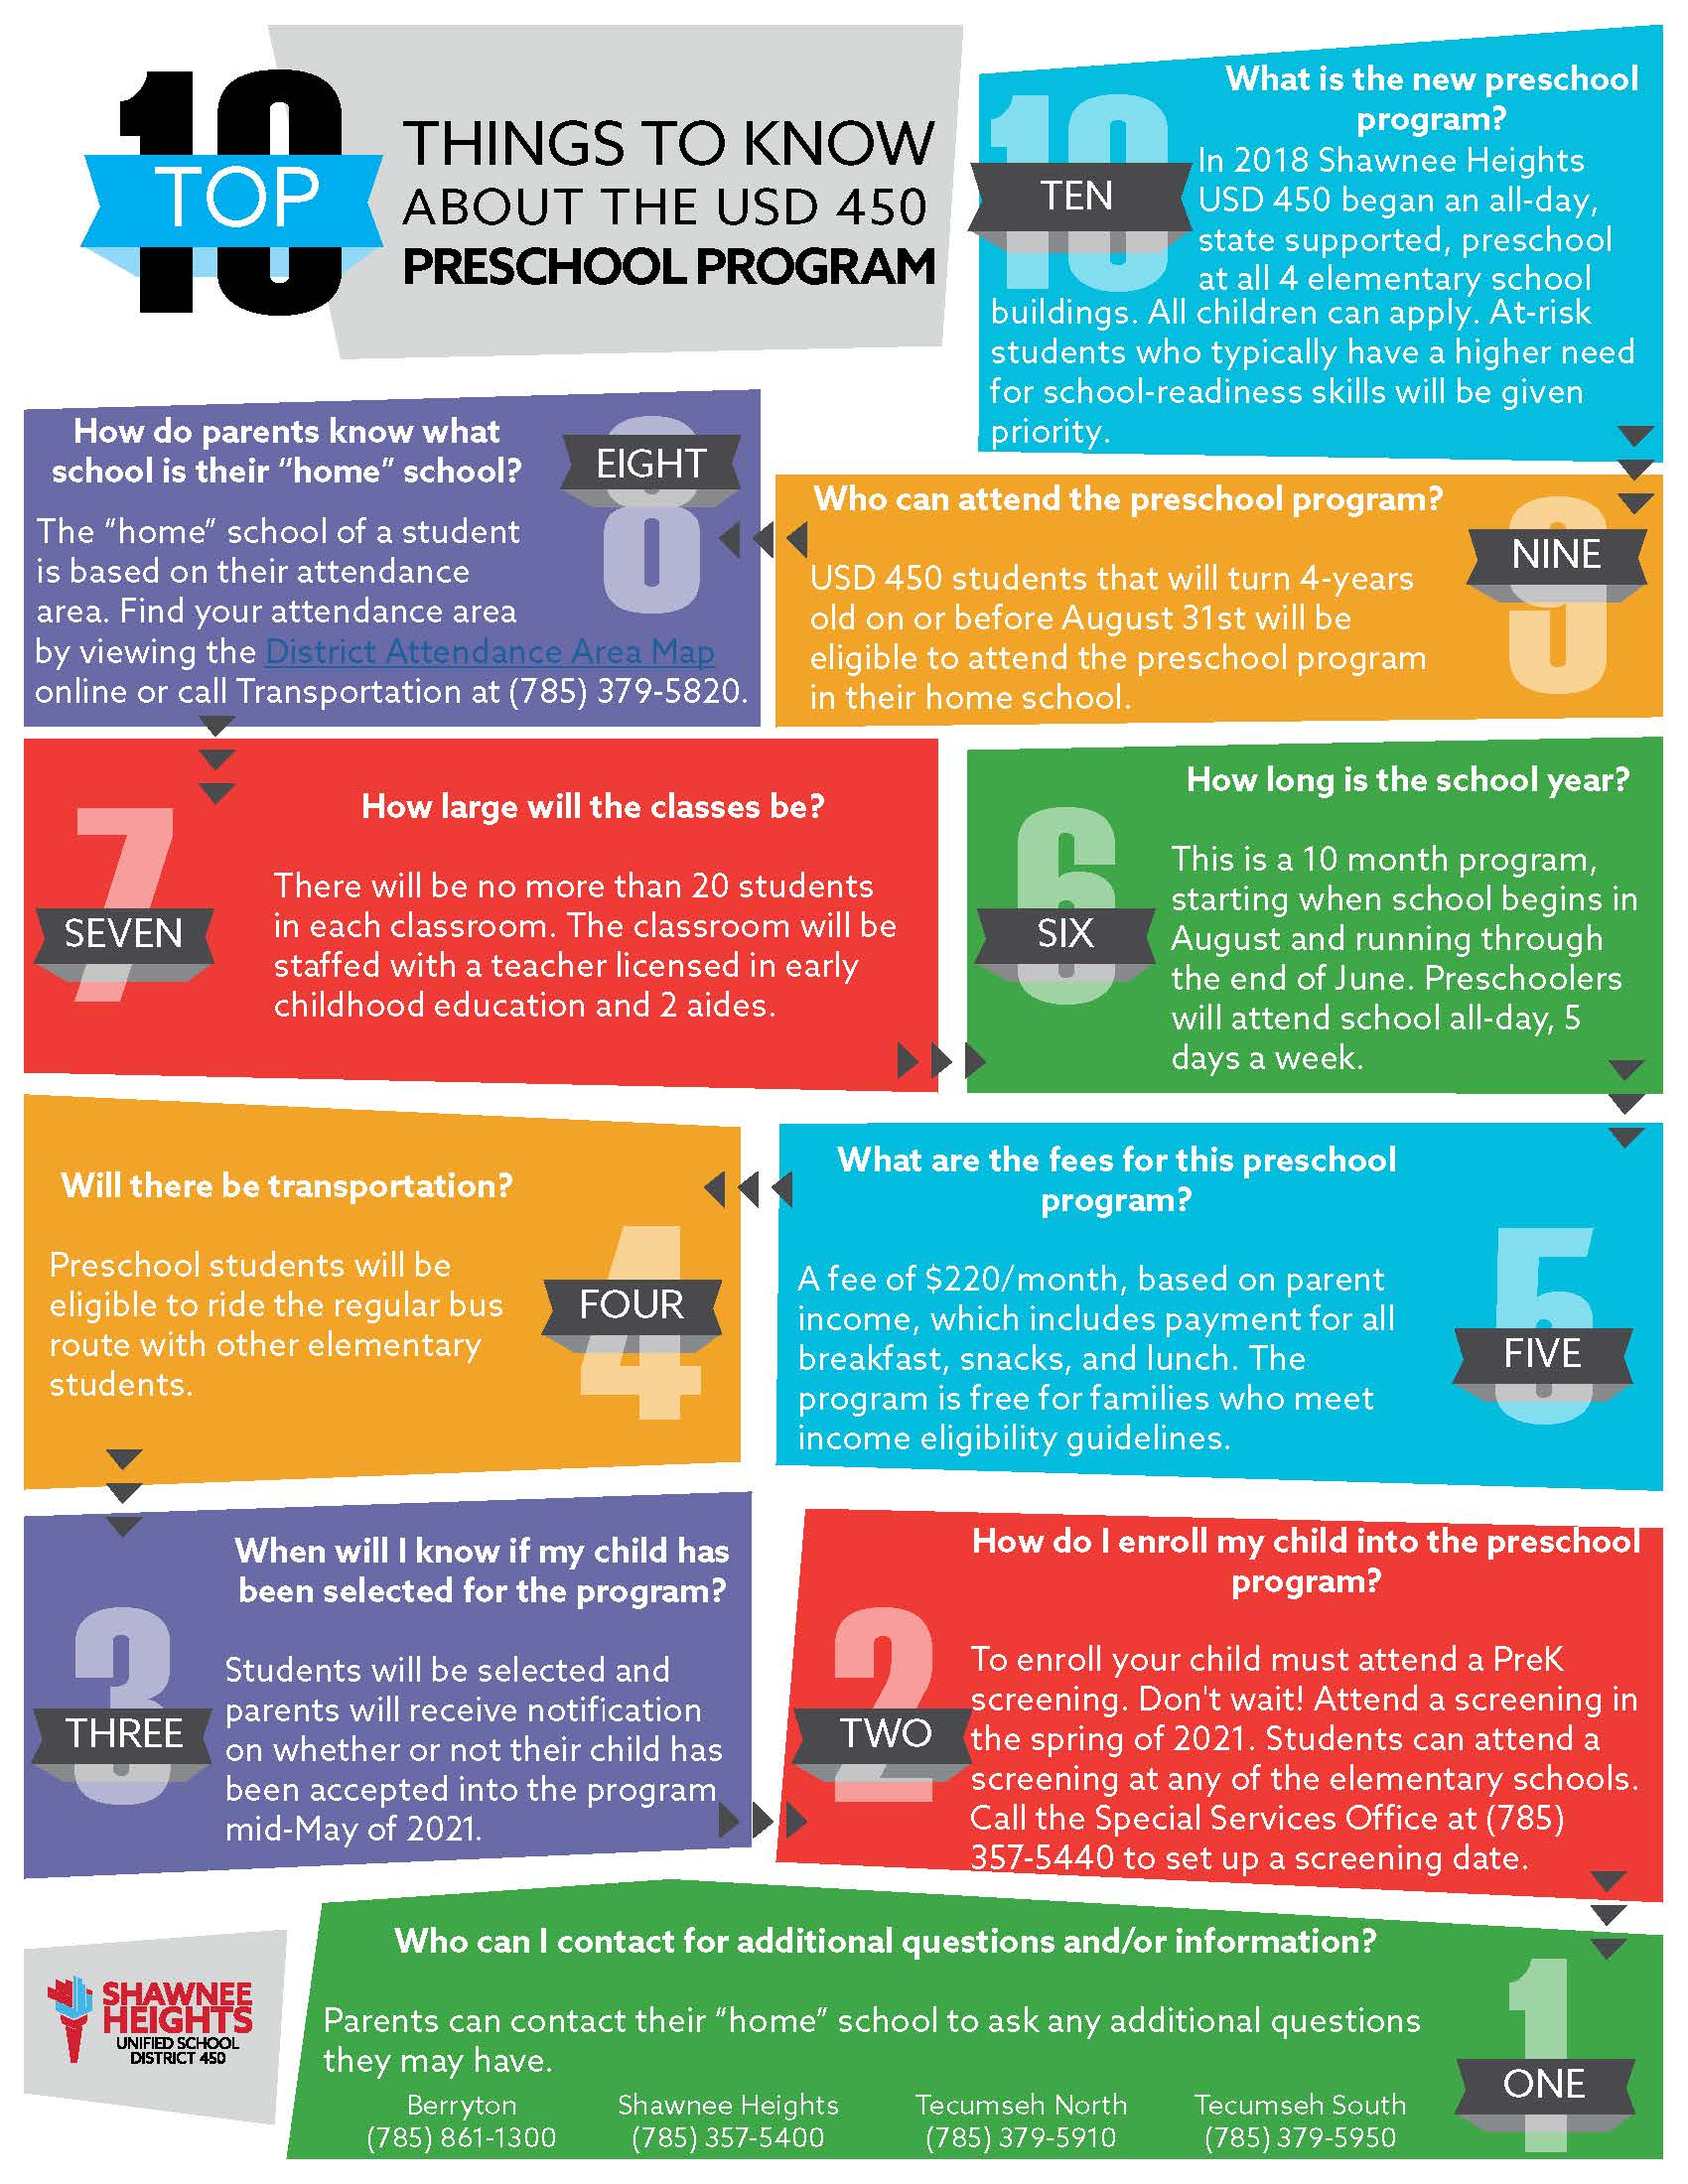 10 Things to Know About the USD 450 PreSchool Program